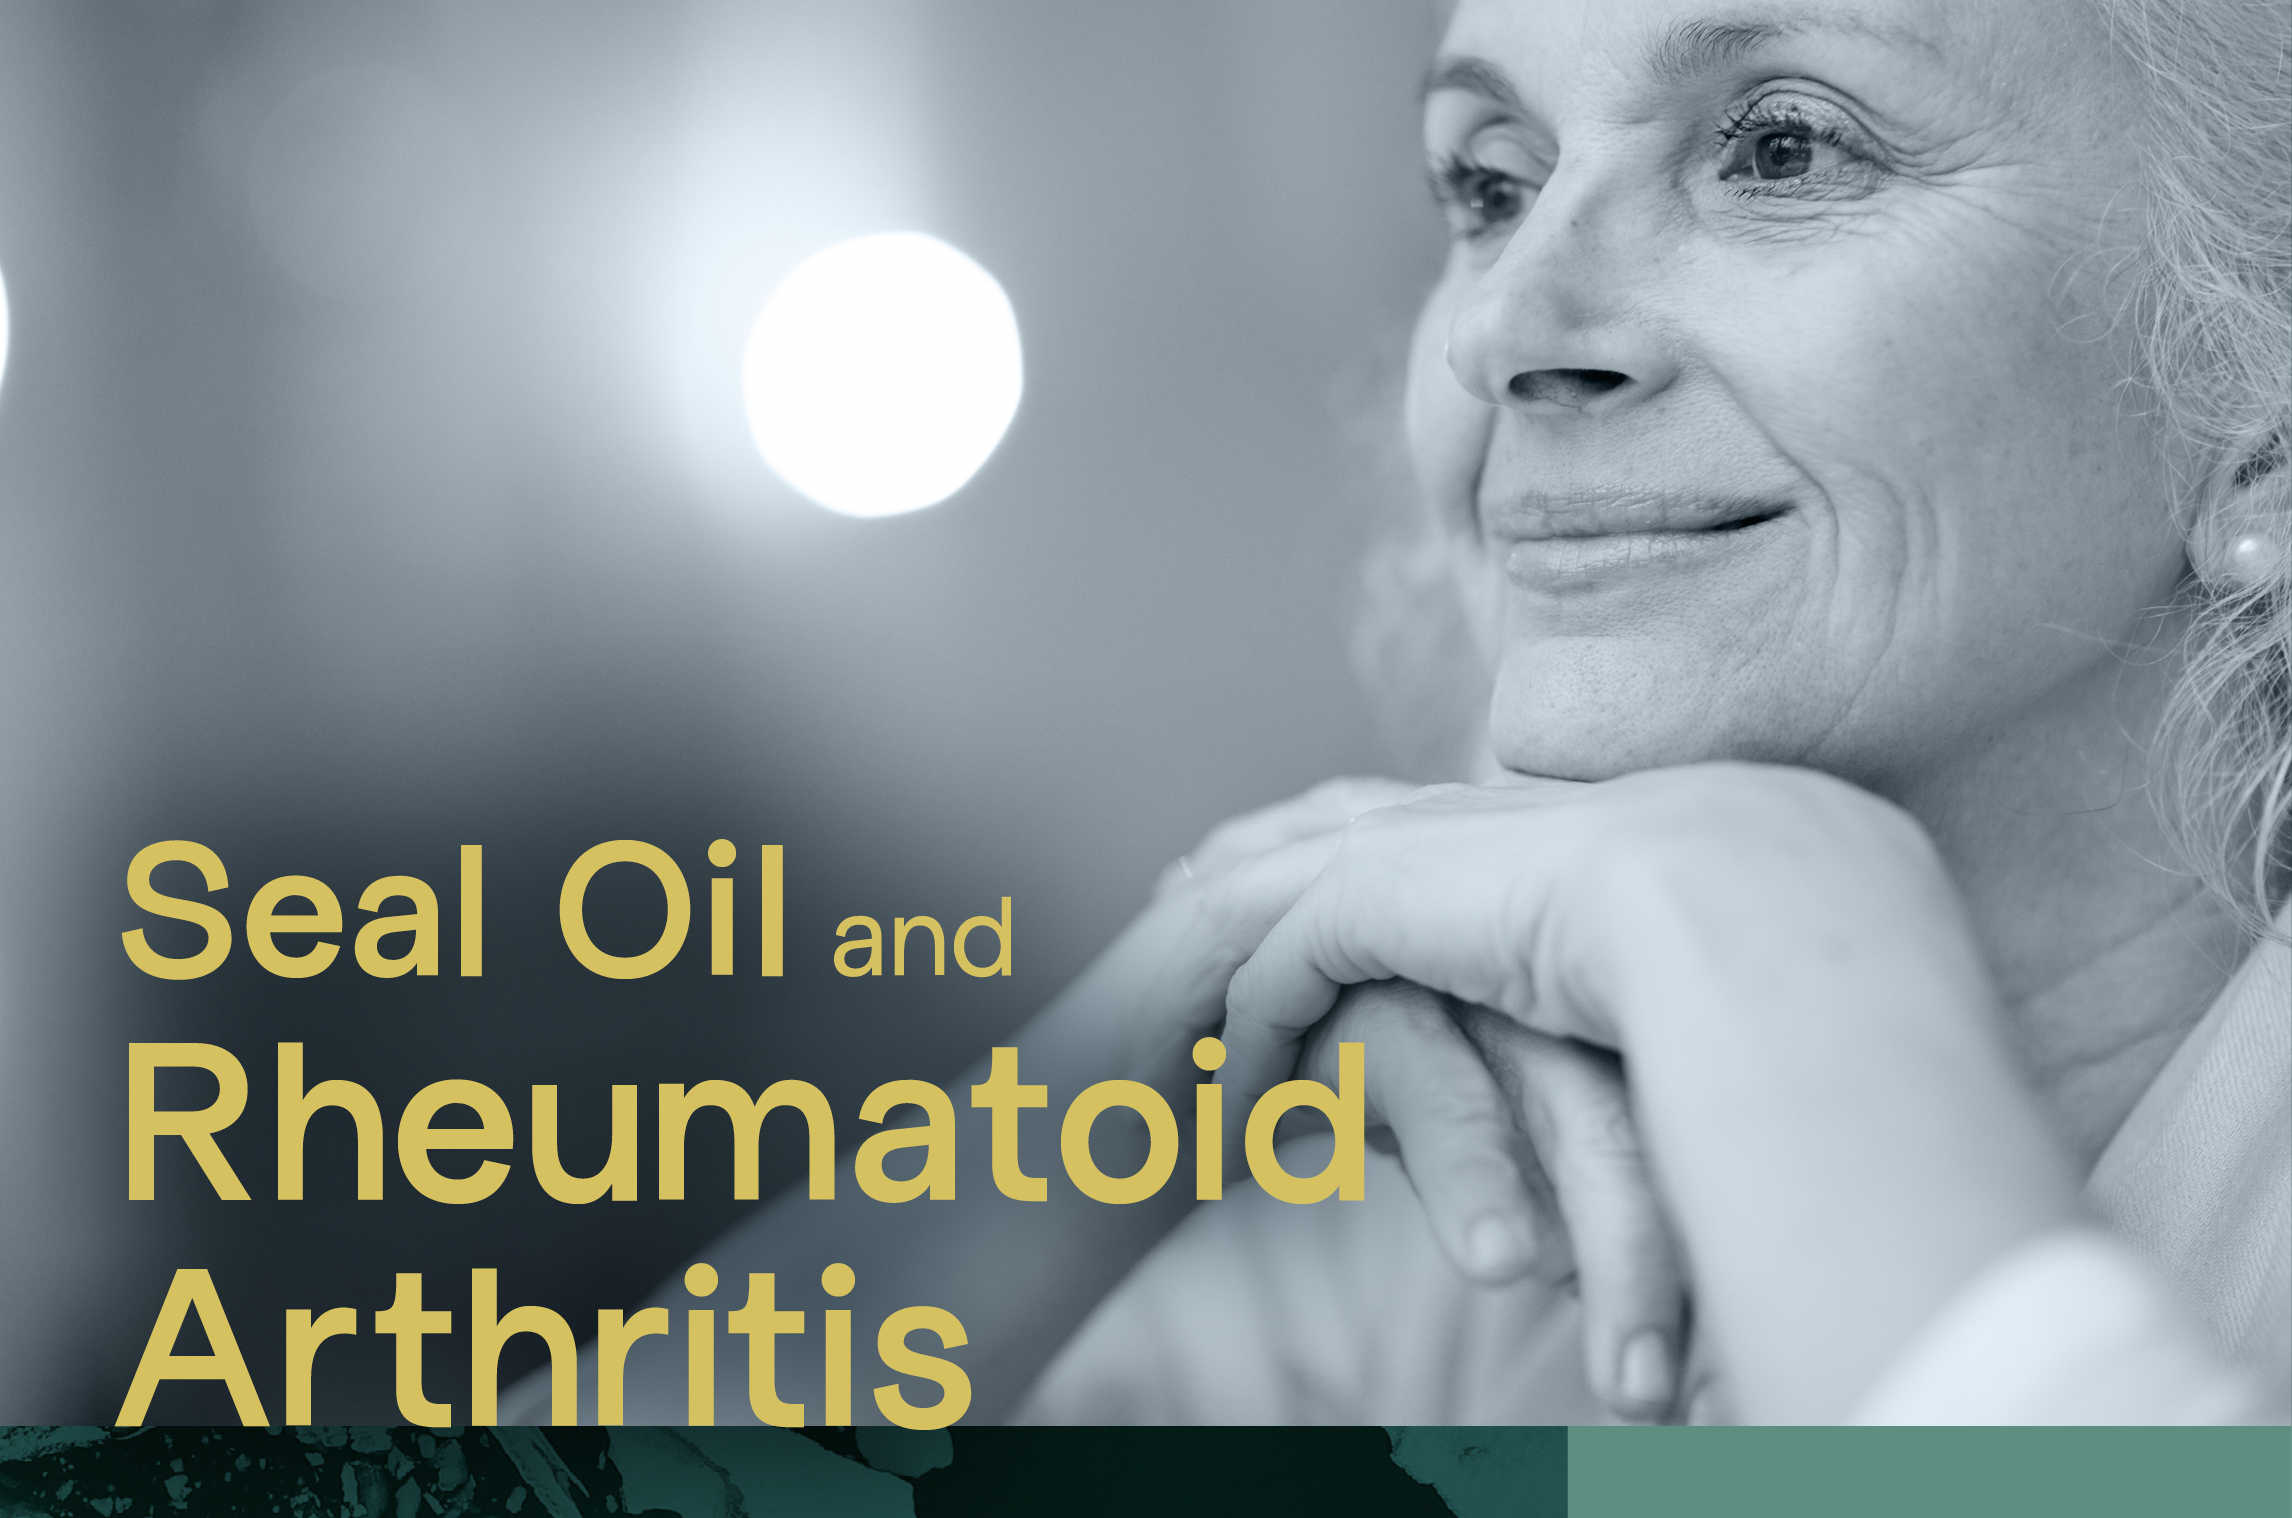 Seal Oil and Rheumatoid Arthritis